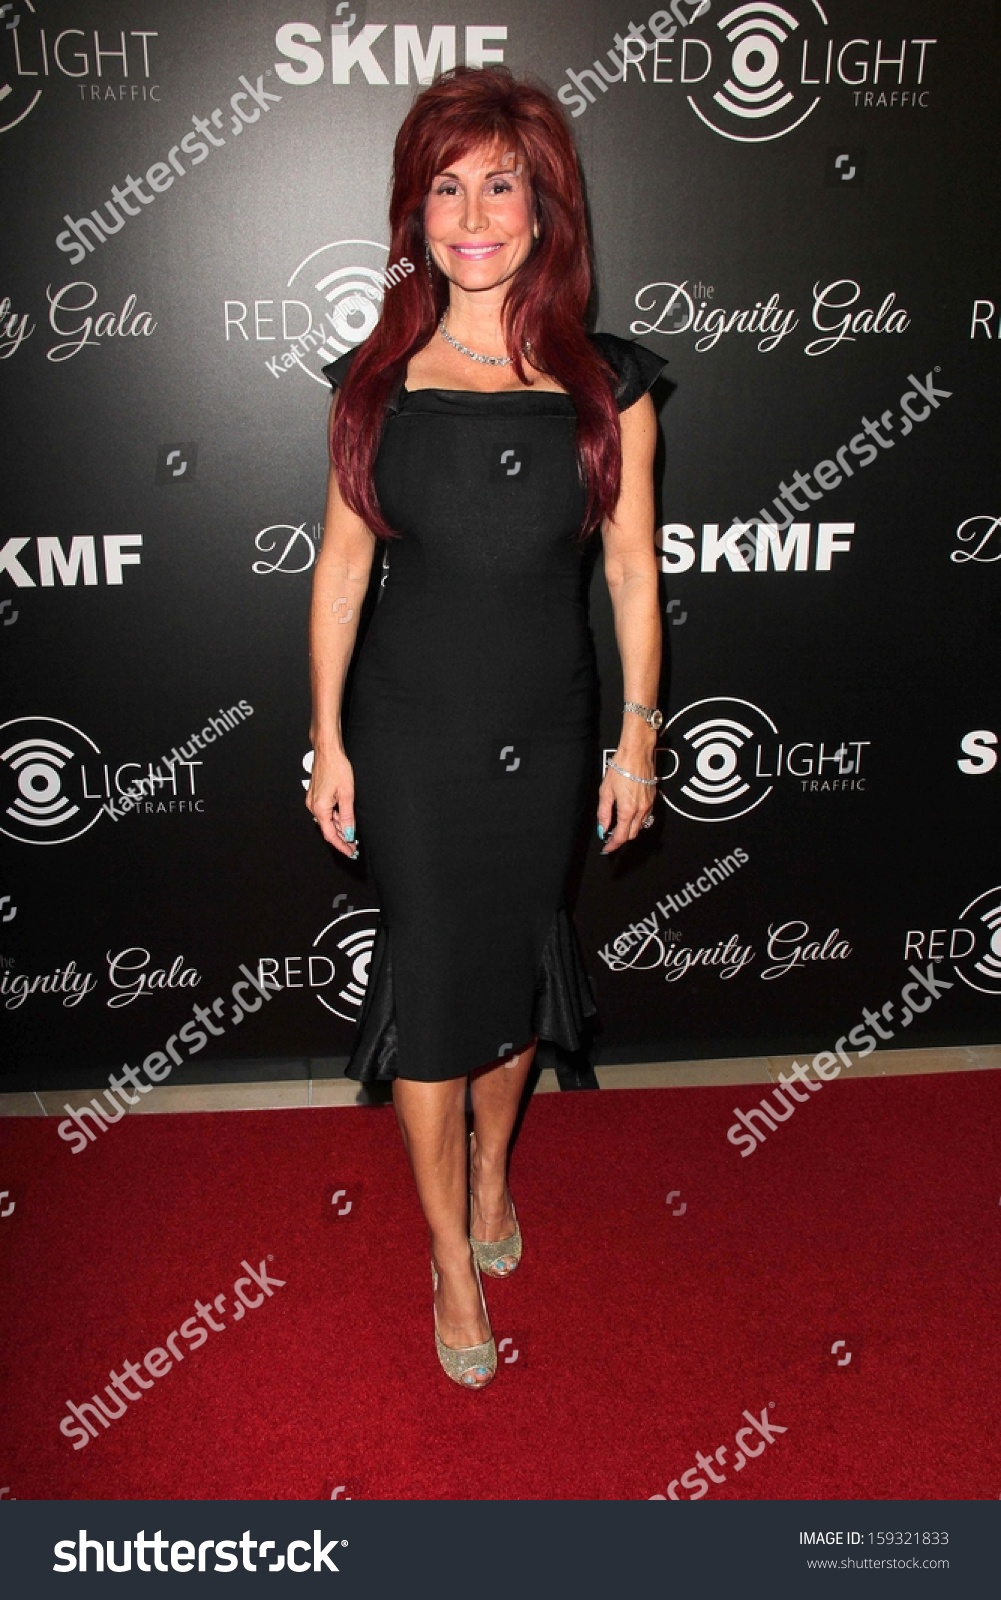 Communication on this topic: Alice Fraser, suzanne-delaurentiis/